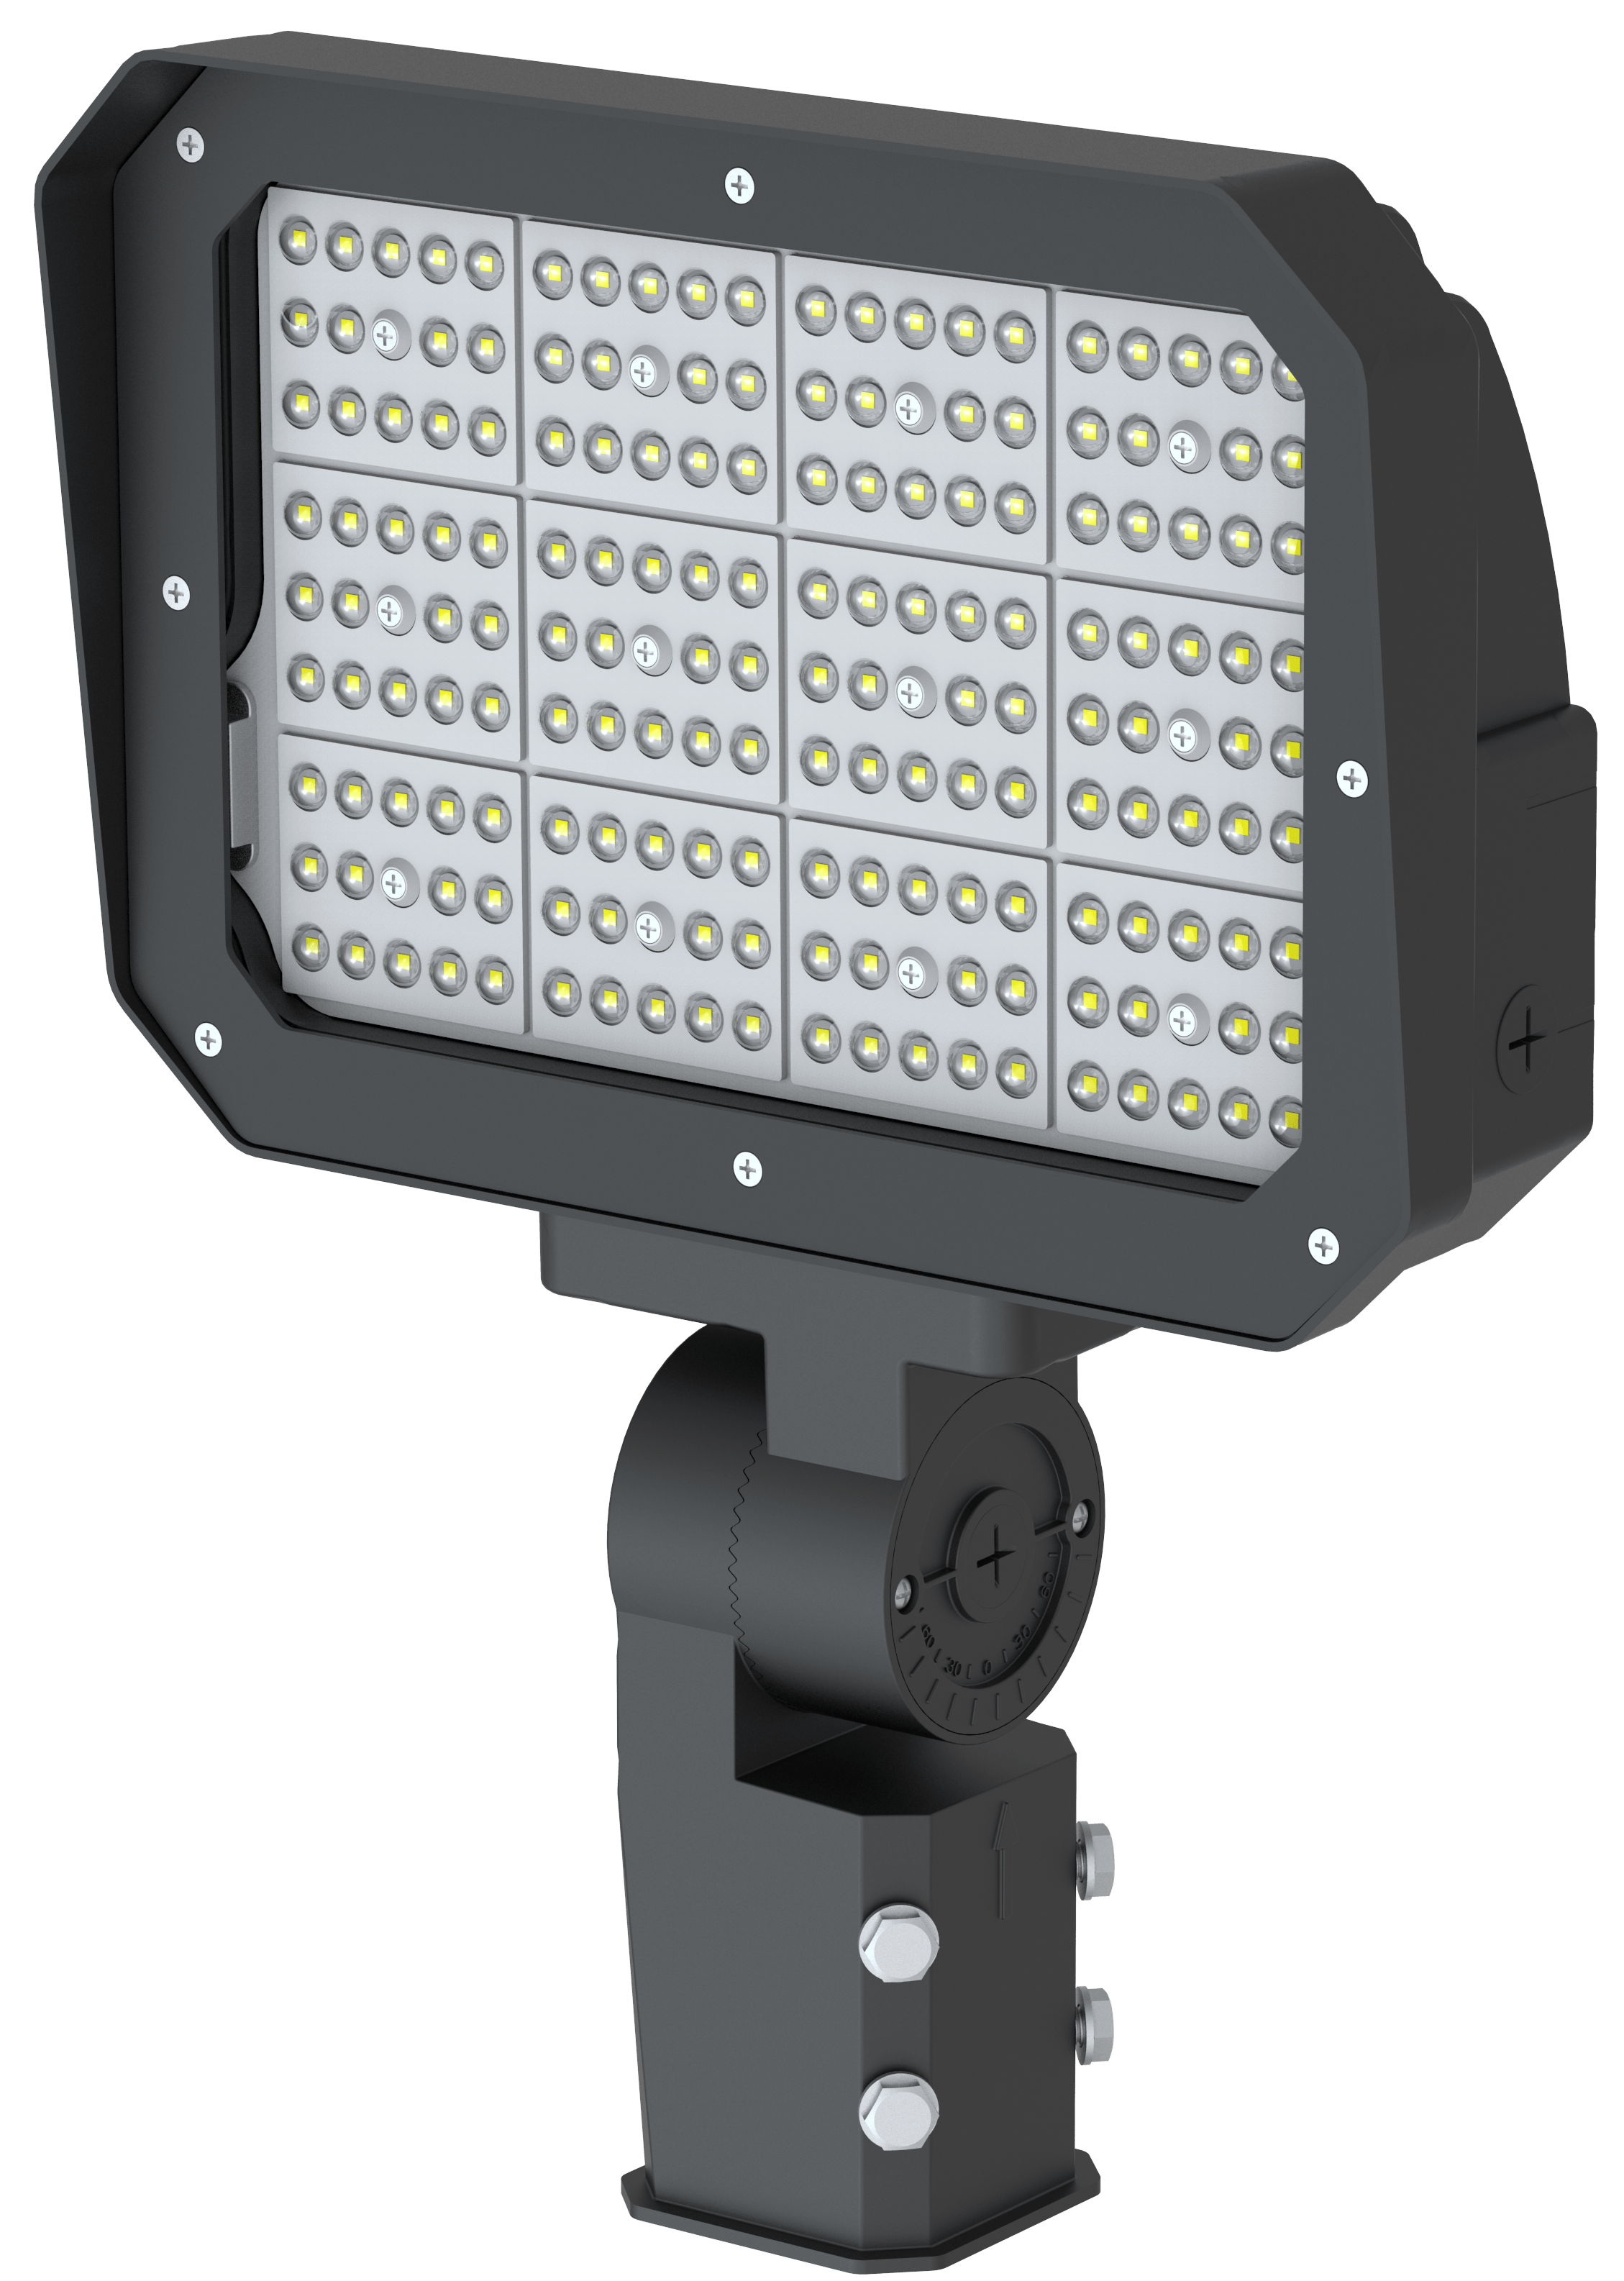 LED Flood Light 50W ,180° Adjustable Knuckle, Waterproof Outdoor Area Lighting